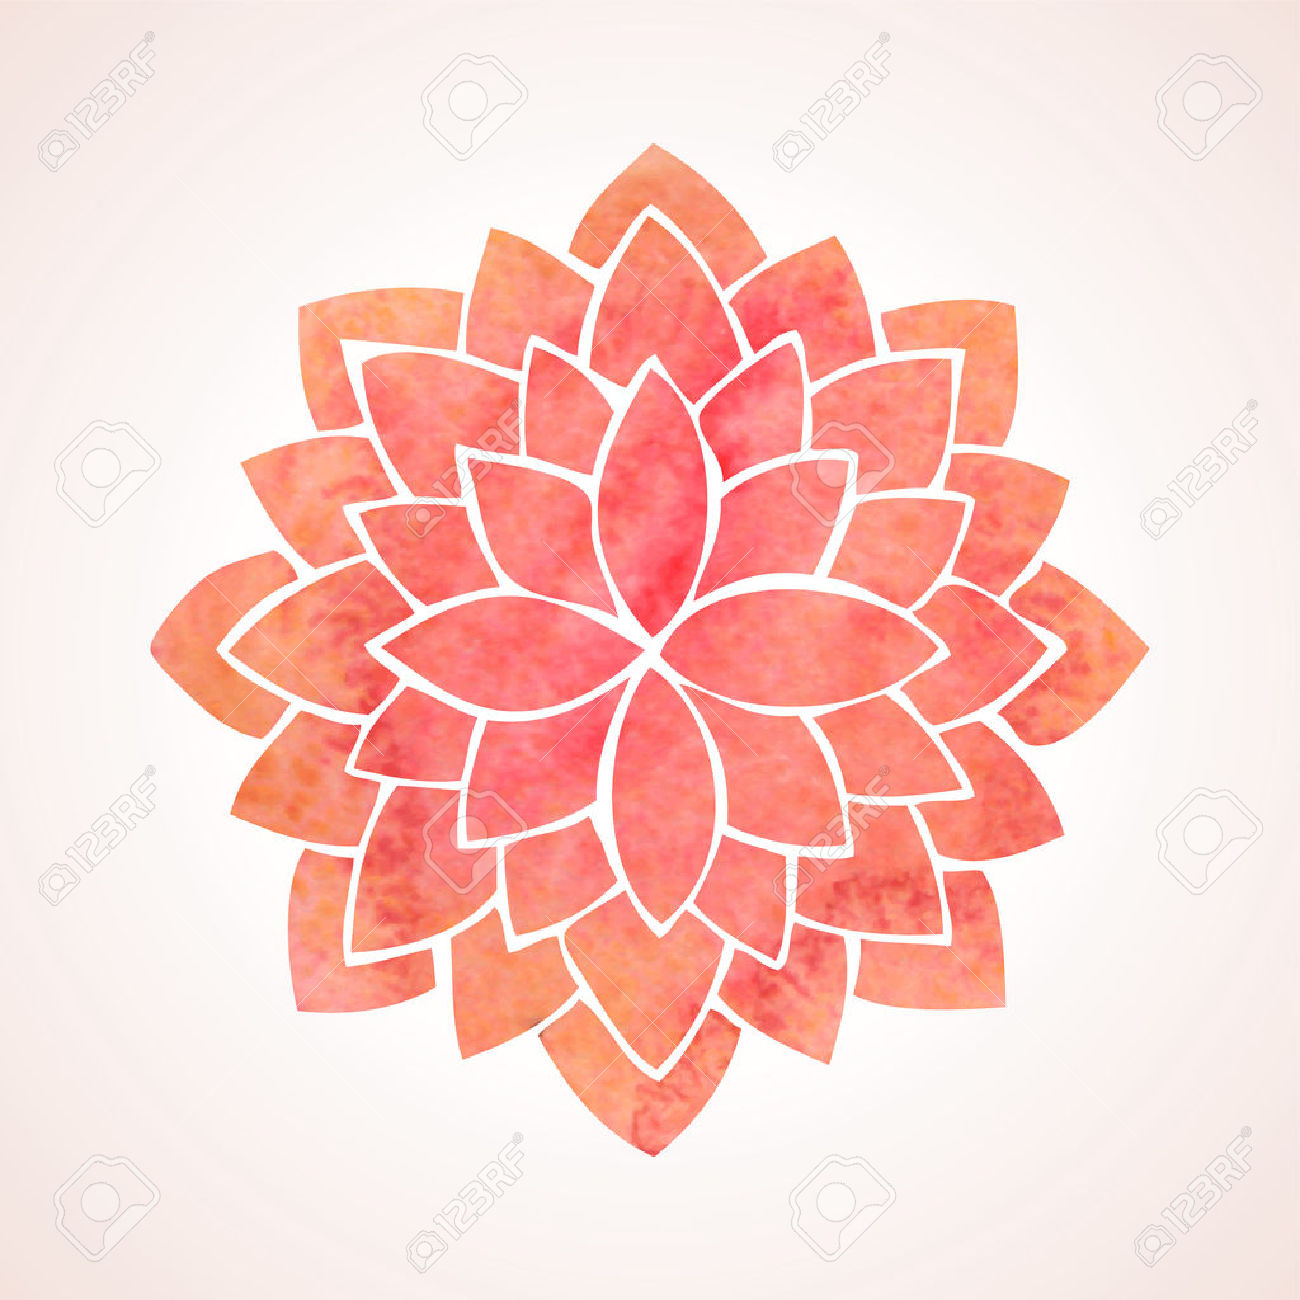 lotus flower pattern clipart #5